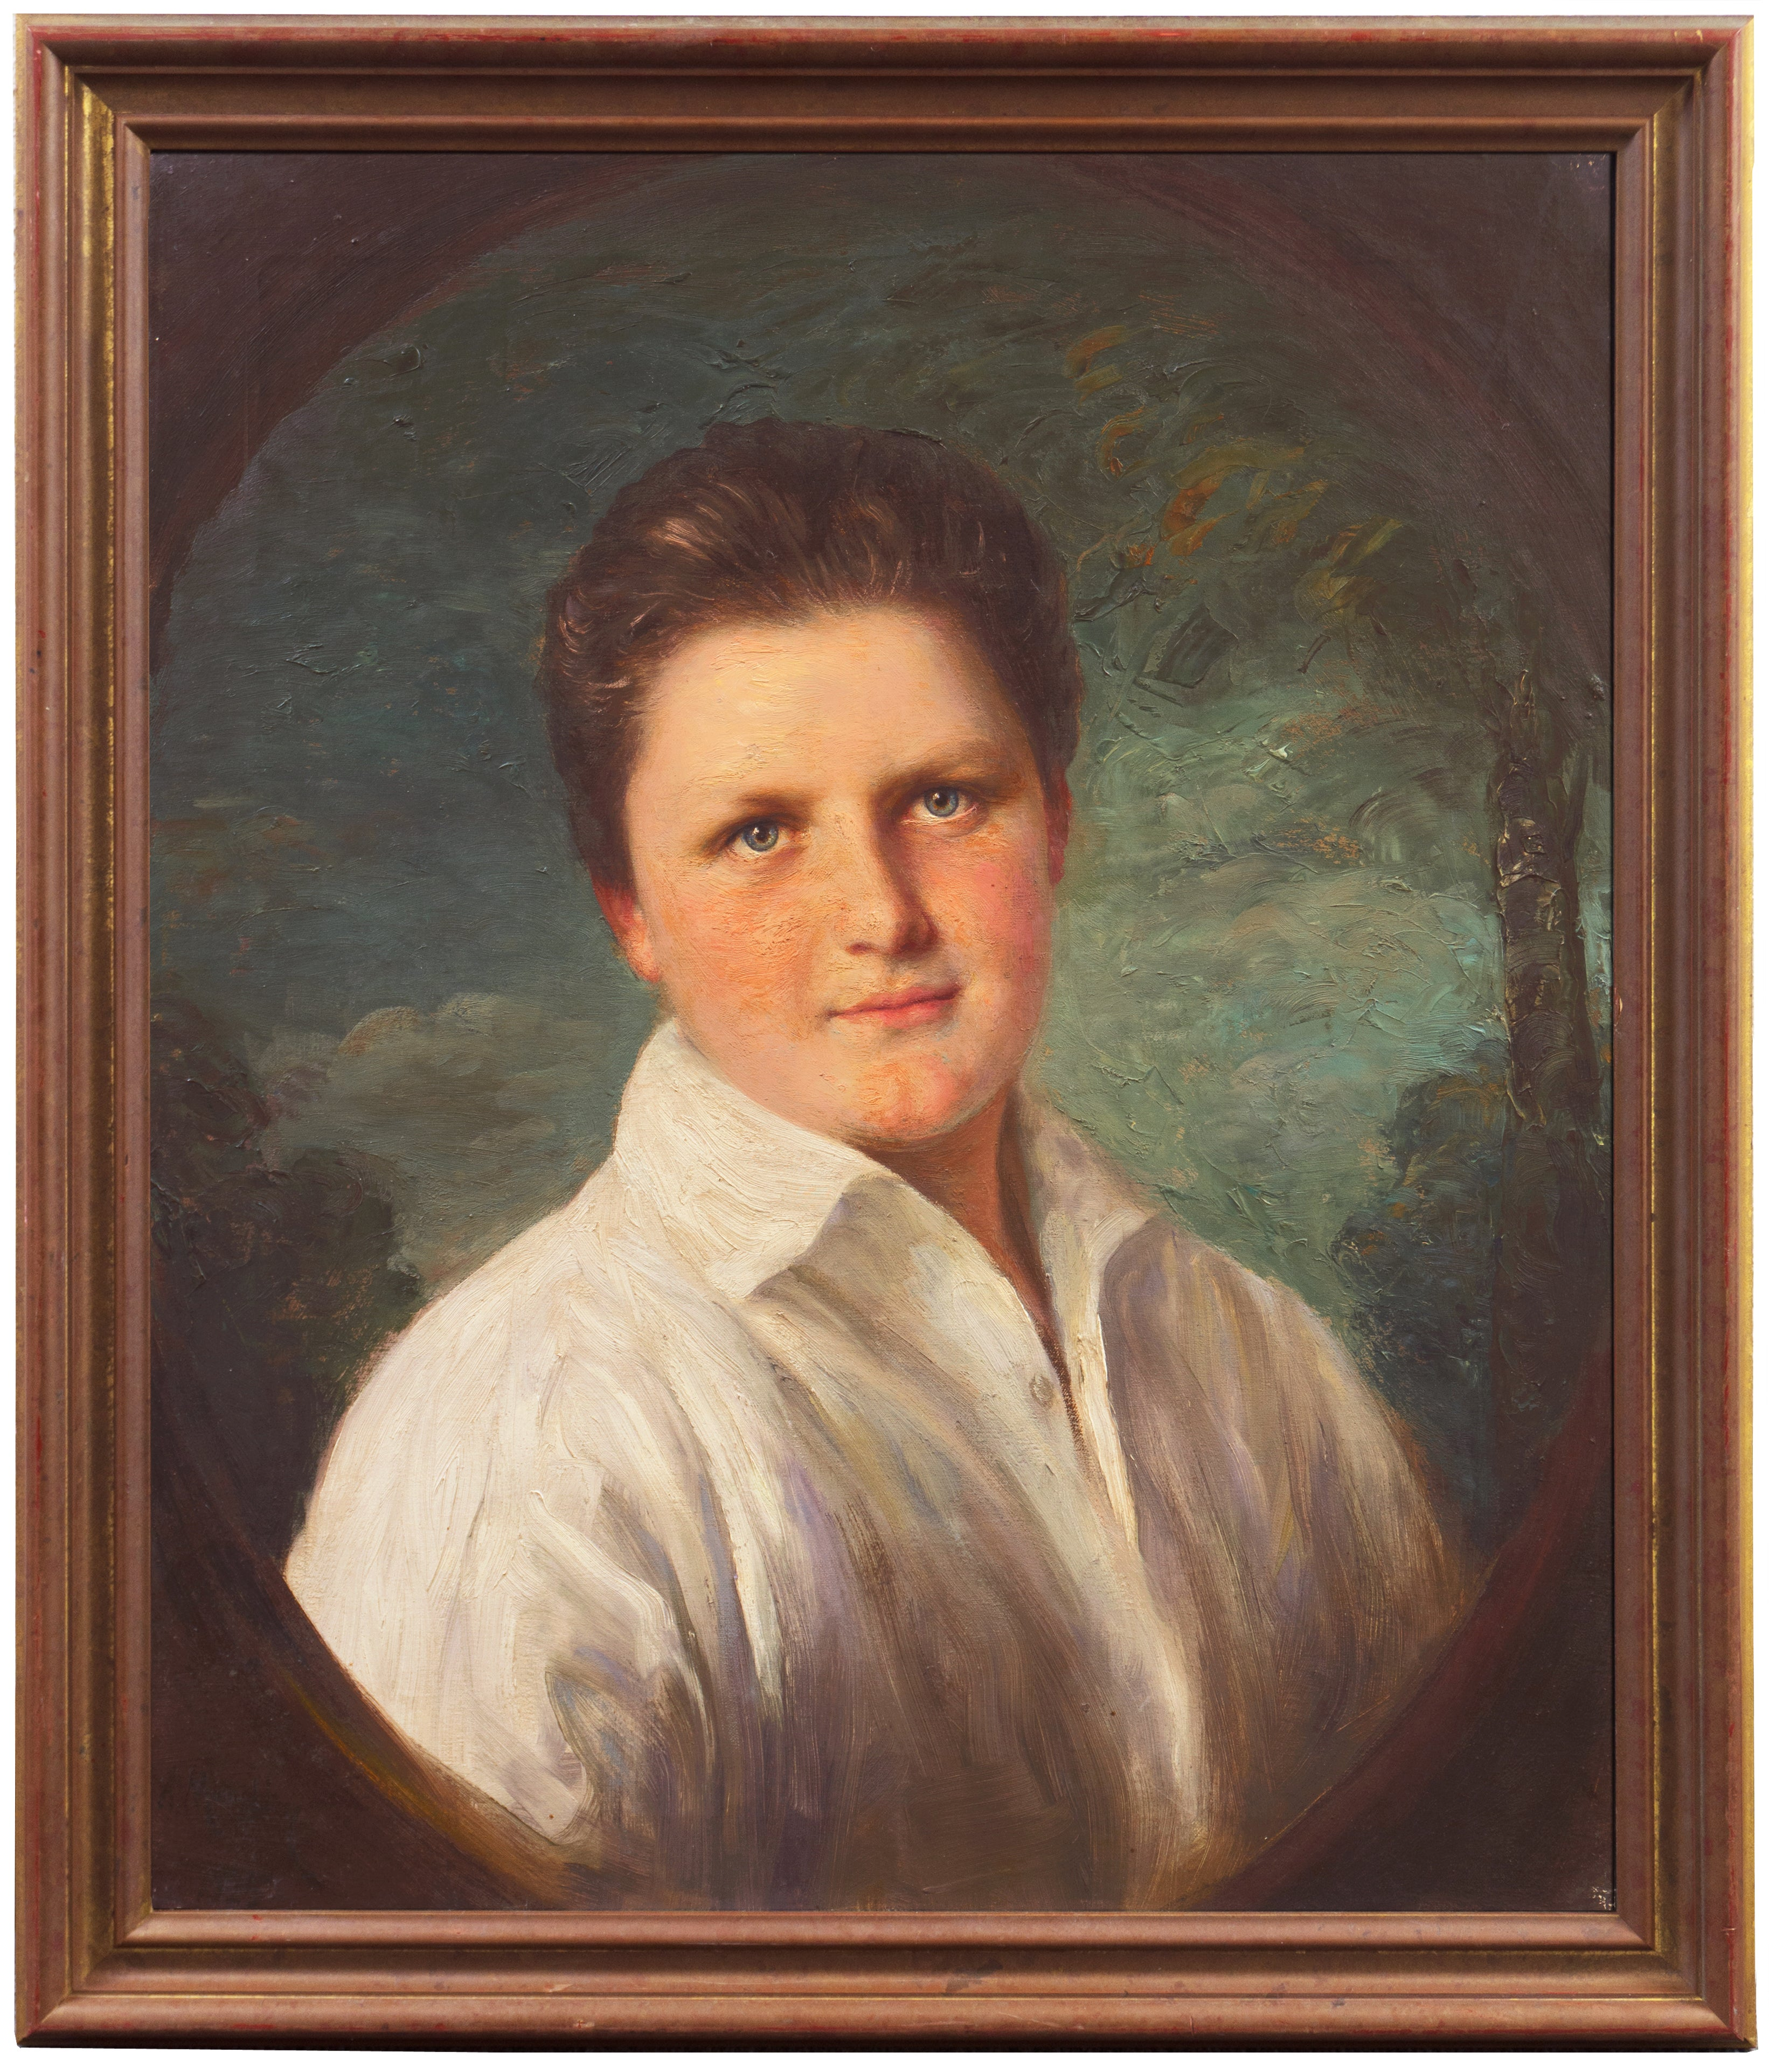 'Portrait of a Young Man', Munich Royal Academy, National Museum of American Art